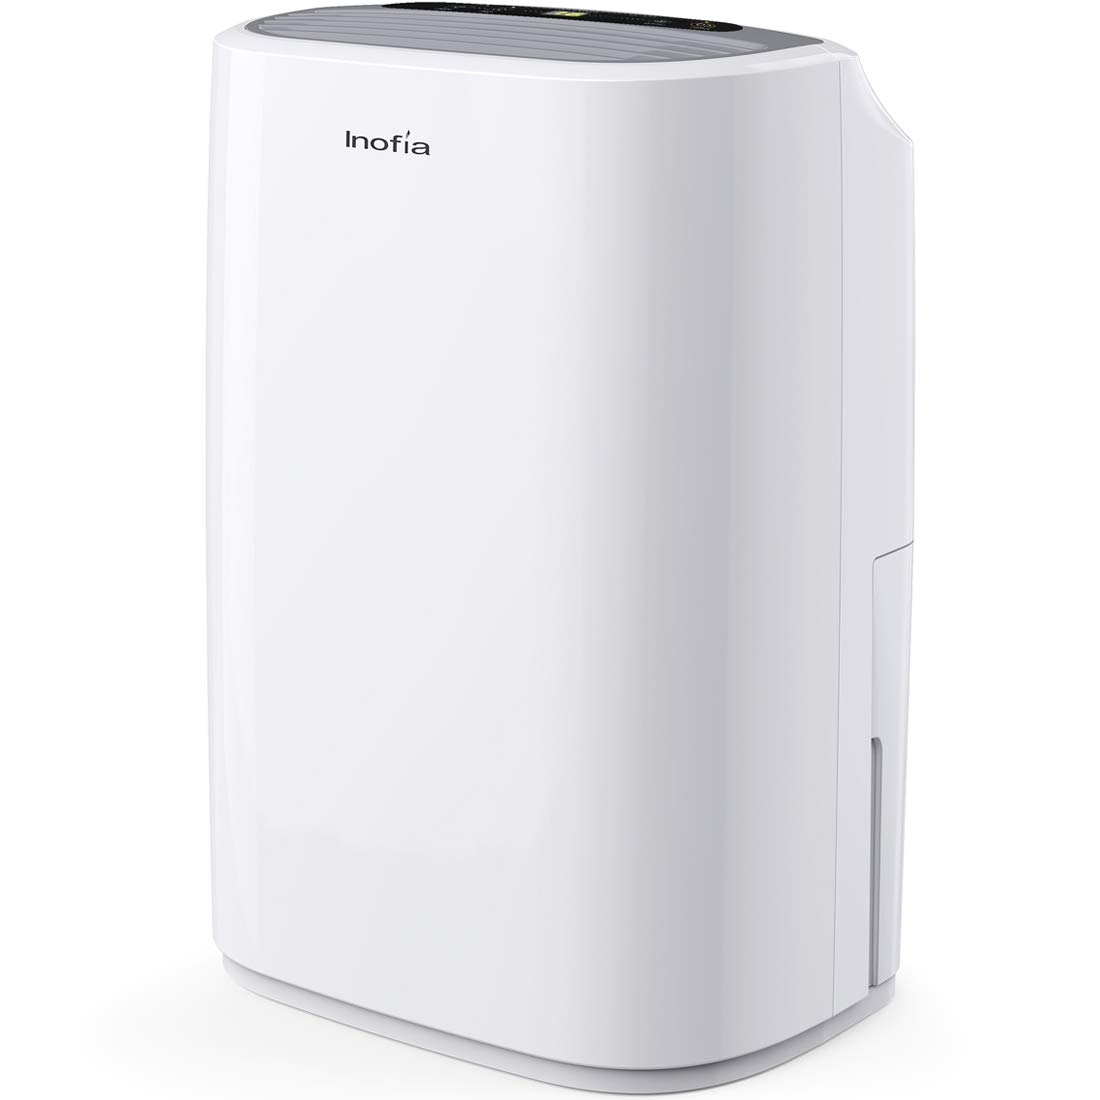 Inofia 30 Pints Dehumidifier Mid-Size Portable For Basements and Large Rooms, Intelligent Humidity Control For Space Up To 1056 Sq Ft, Continuous Drain Hose Outlet for Bathroom Basements Garage by Inofia